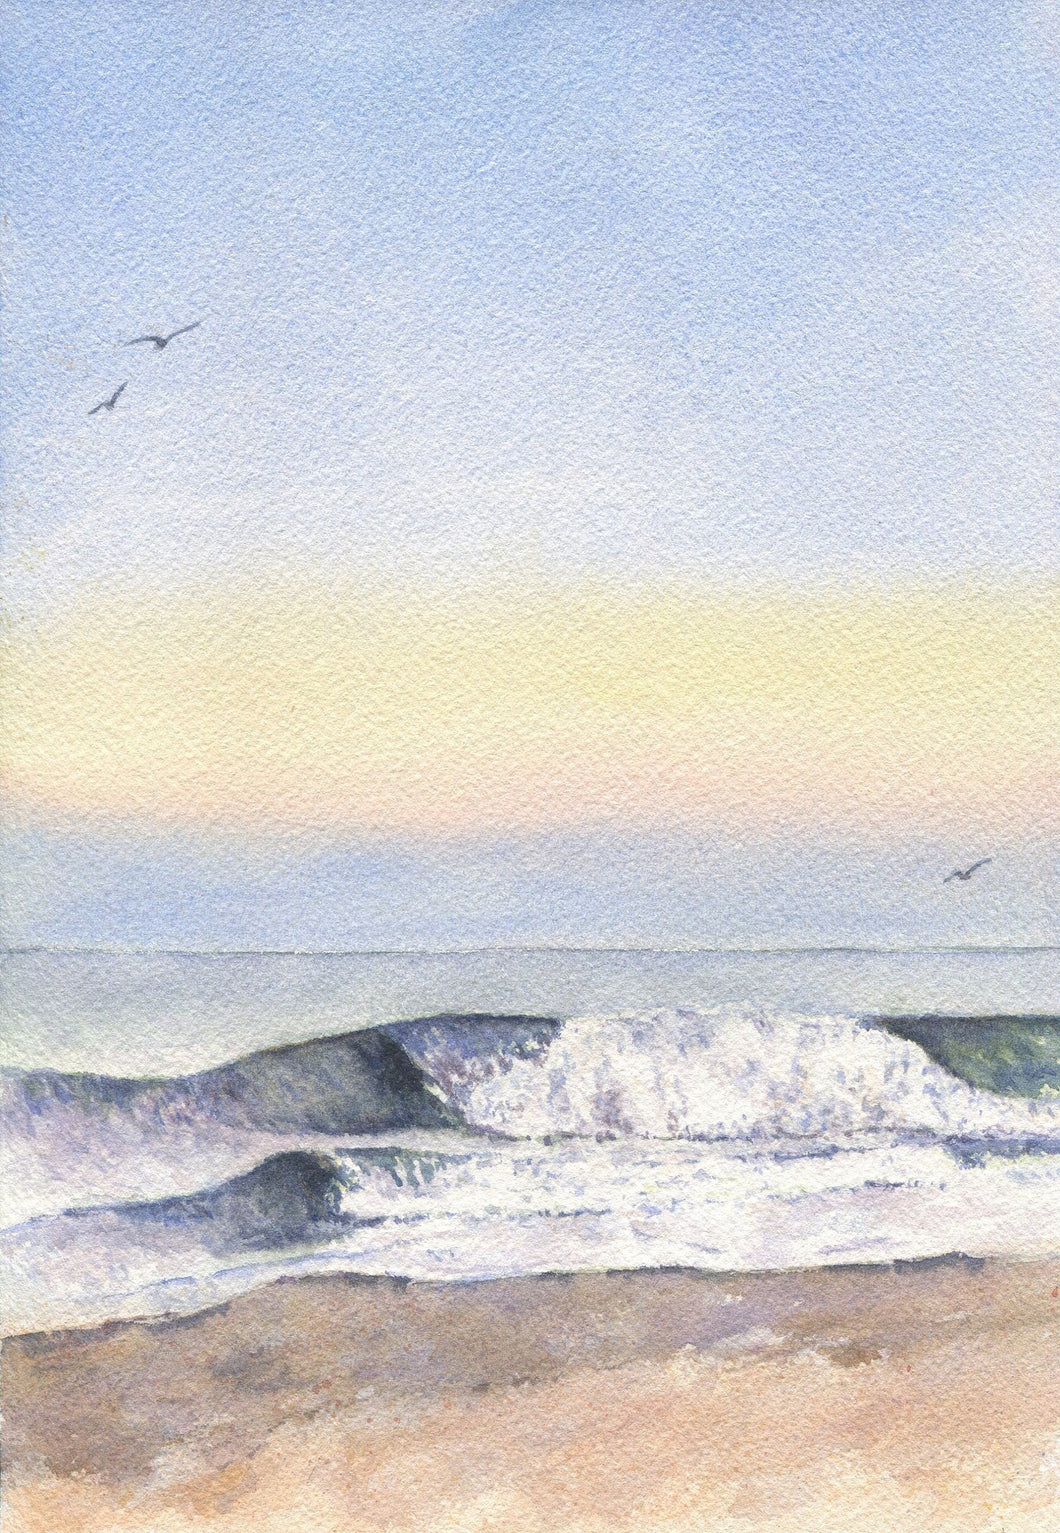 Low Tide: ocean print beach art watercolor seascape watercolor ocean framed beach print wave painting wave print sunset beach original art - Leigh Barry Watercolors